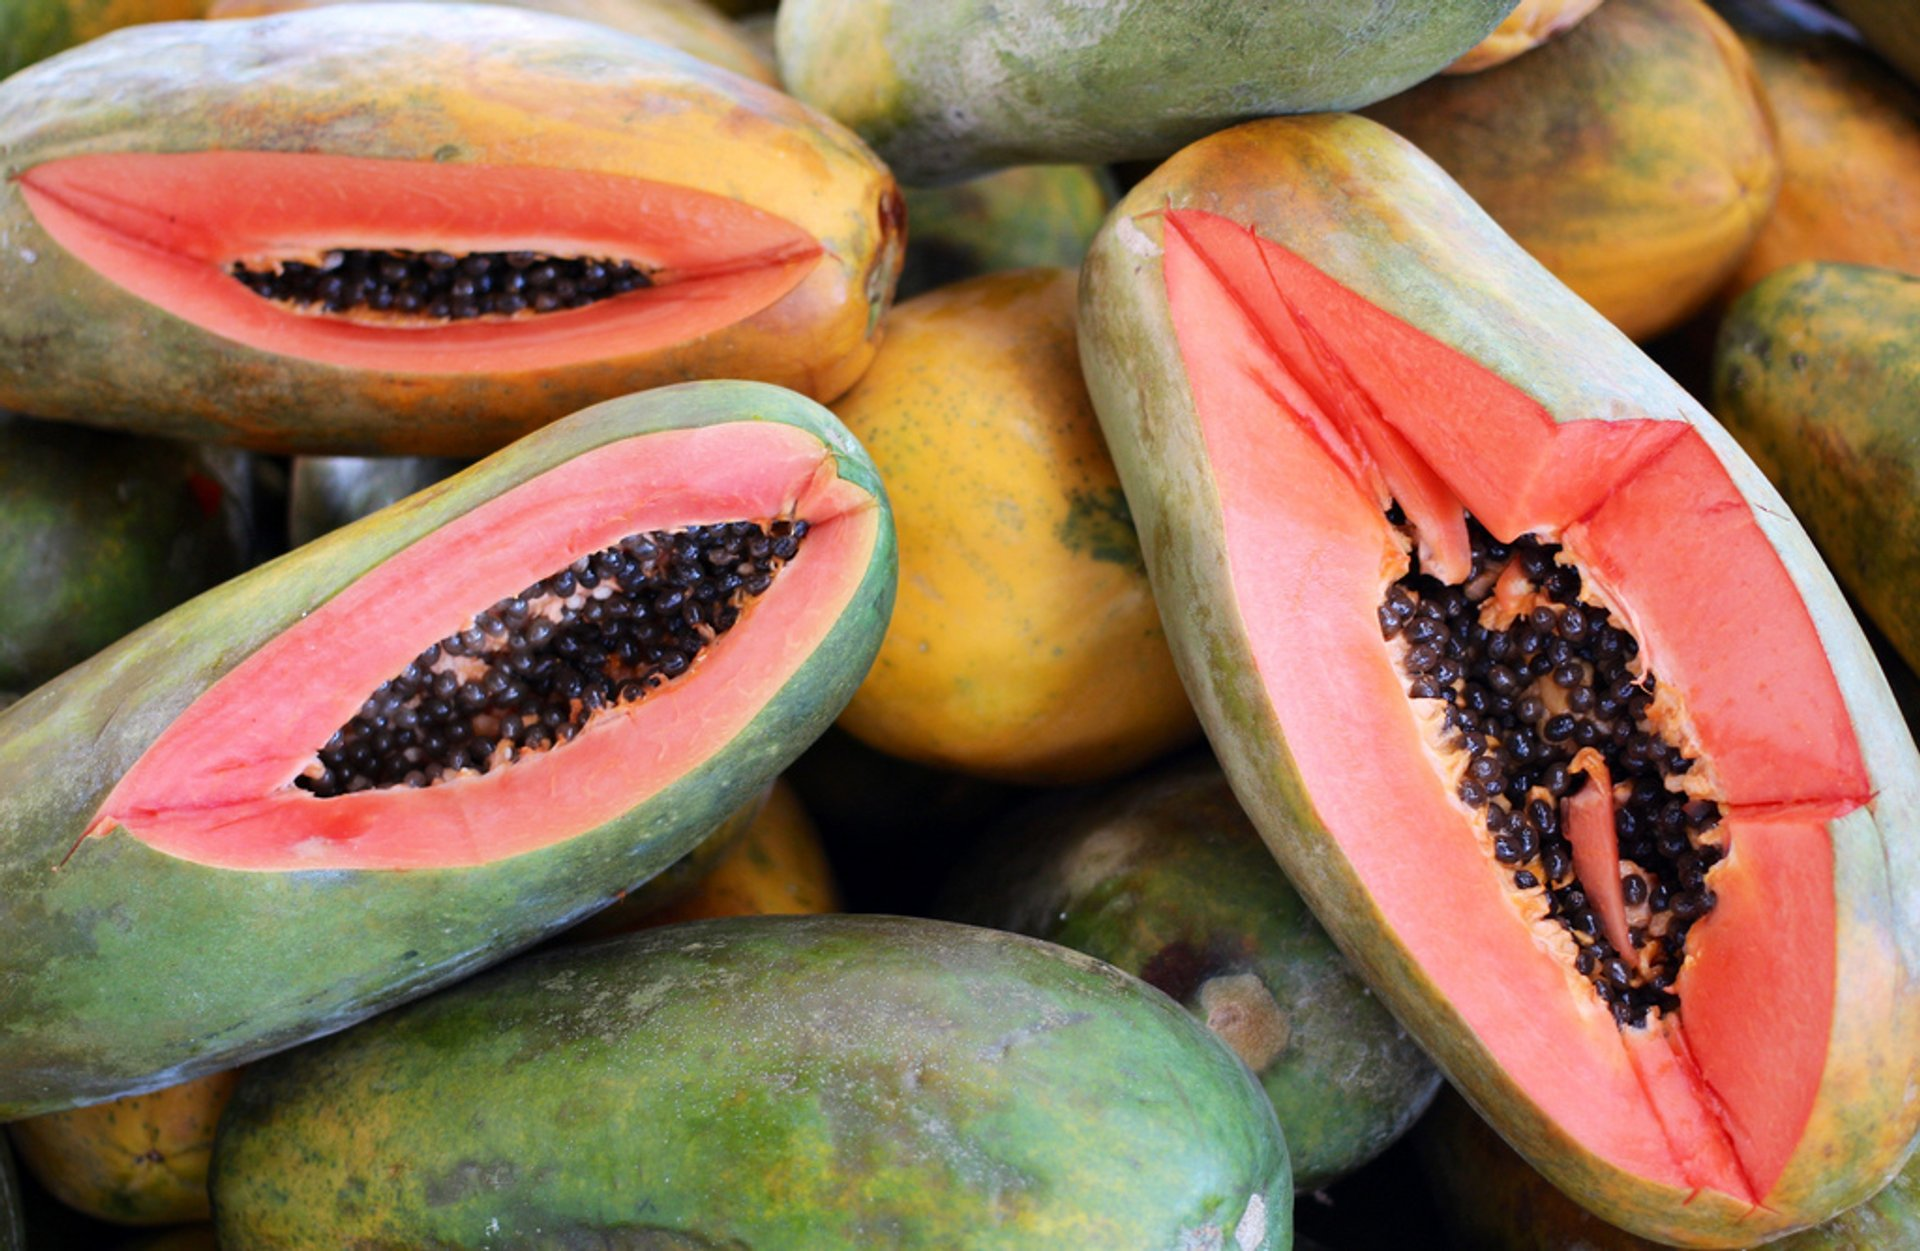 Papaya in Costa Rica 2019 - Best Time